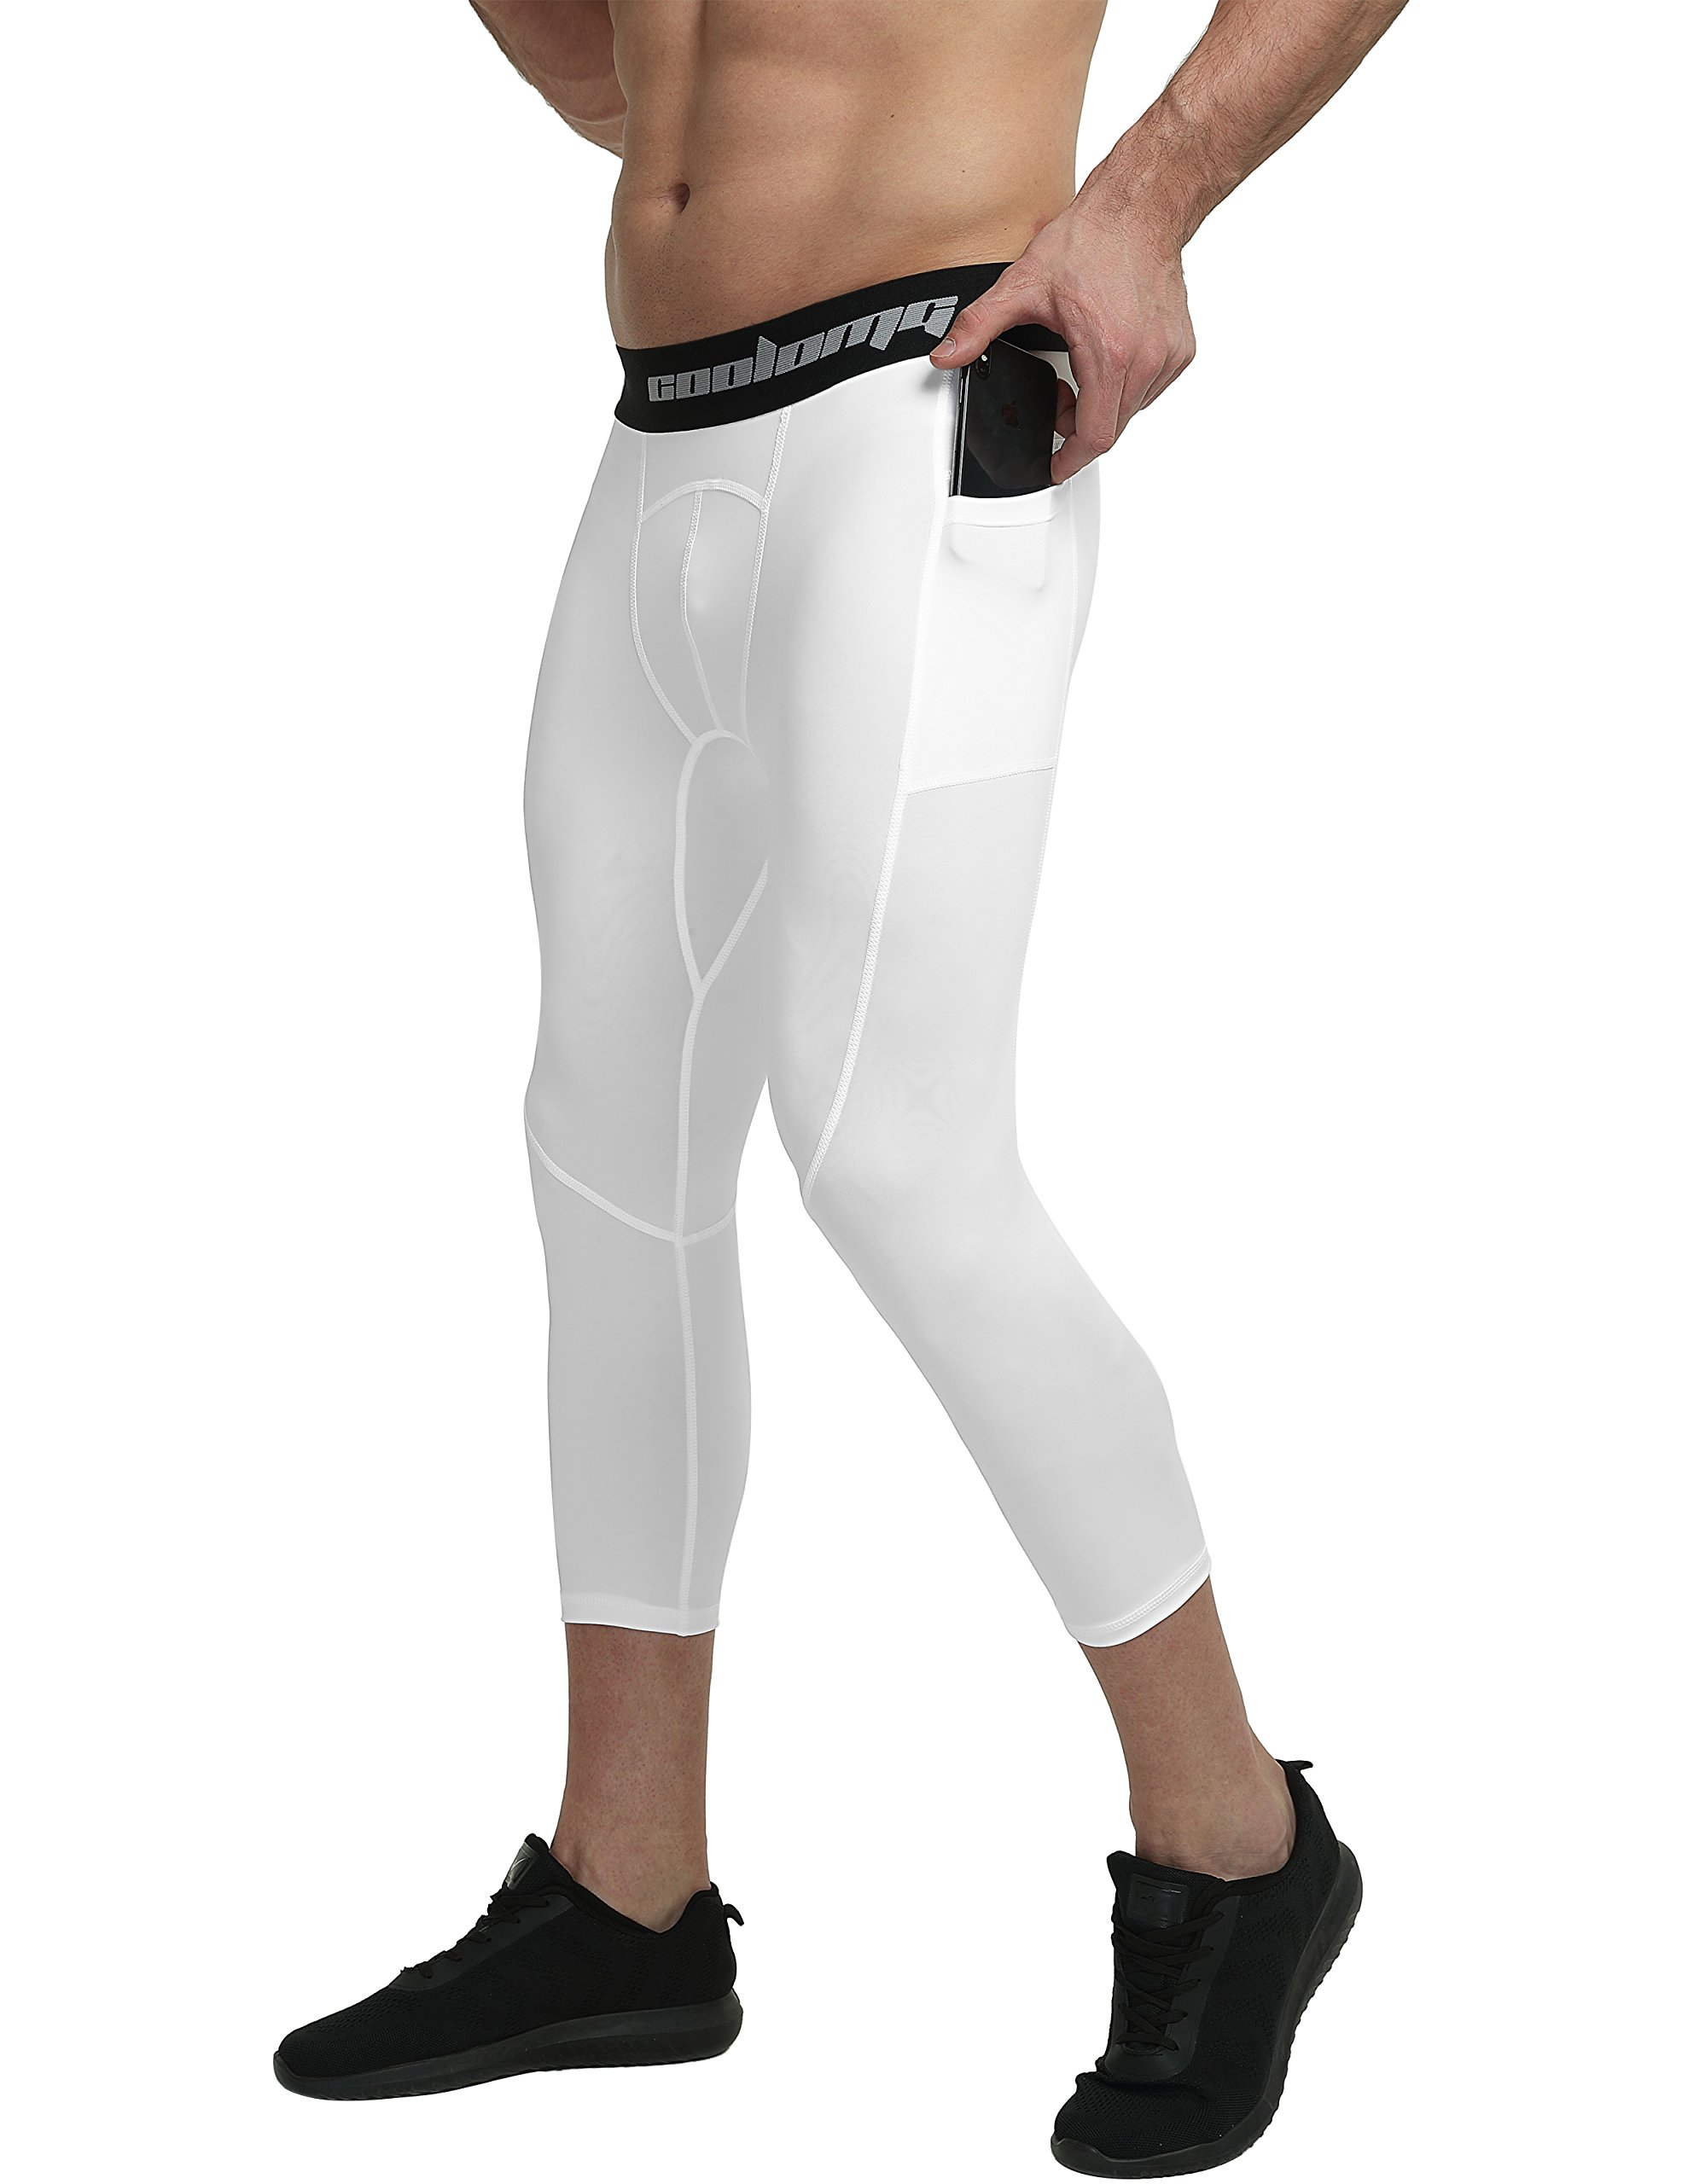 COOLOMG Compression Pants Running Tights 3/4 Capri